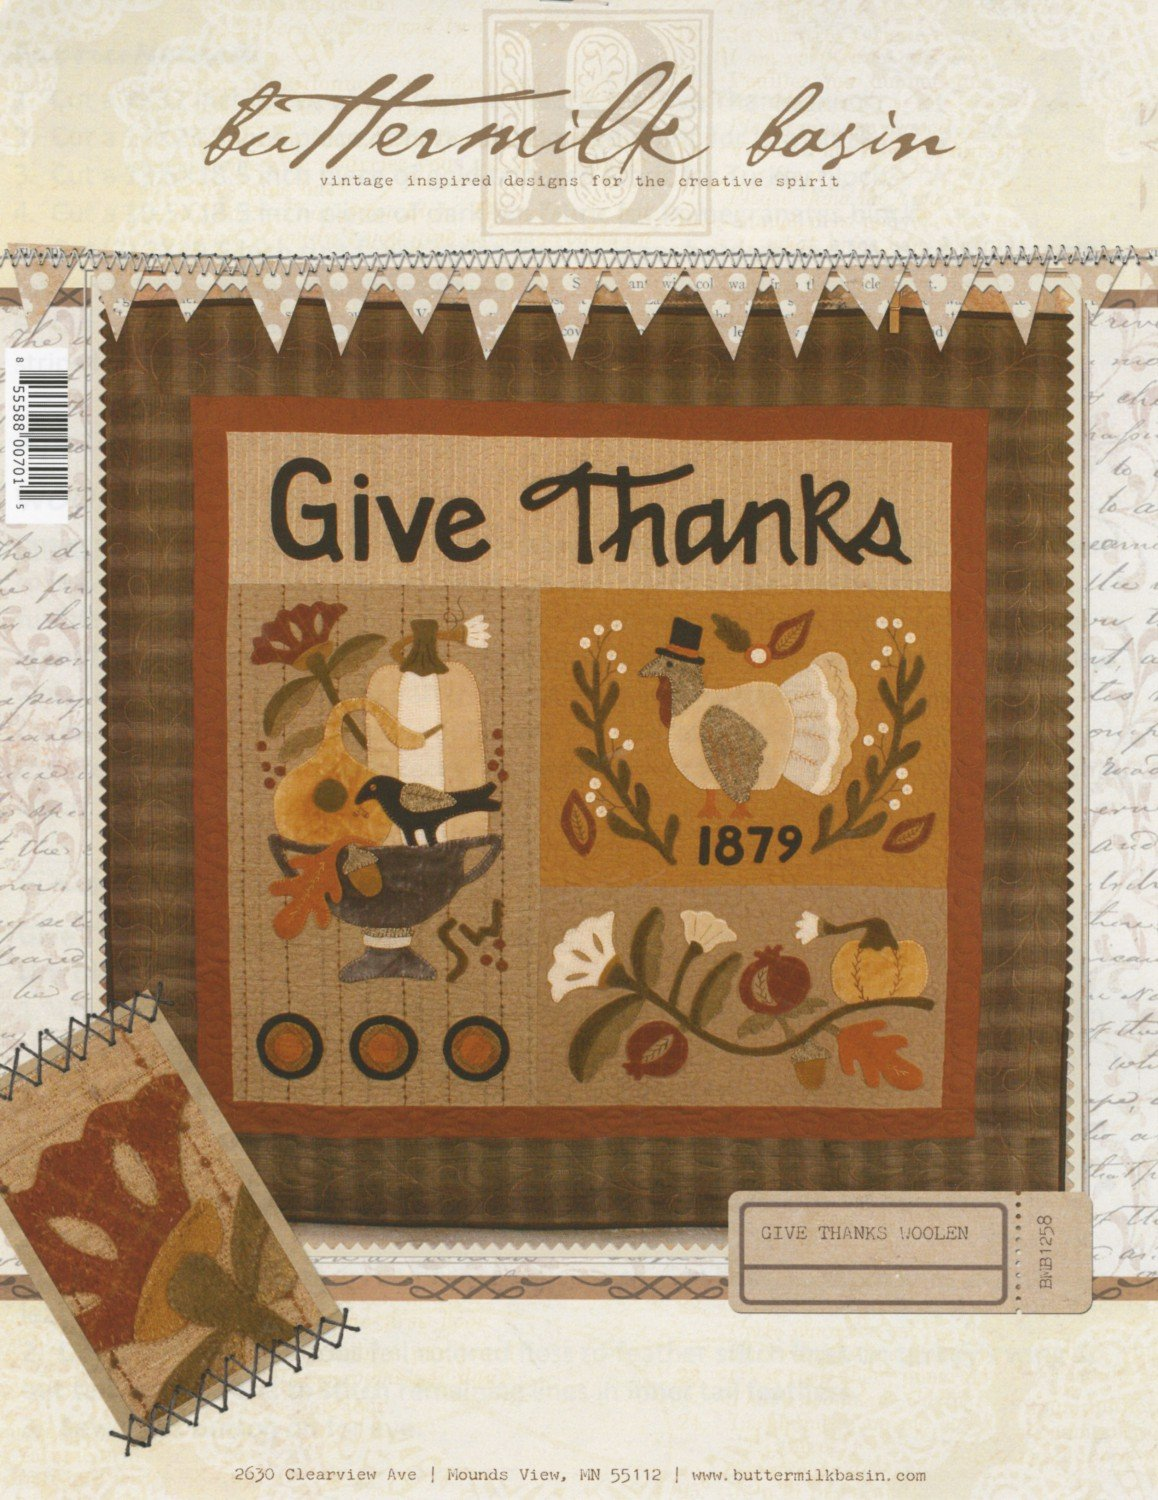 Wool Quilt Pattern Thanksgiving by Buttermilk Basin Give Thanks Woolen BMB 1258-42.5 x 50.5